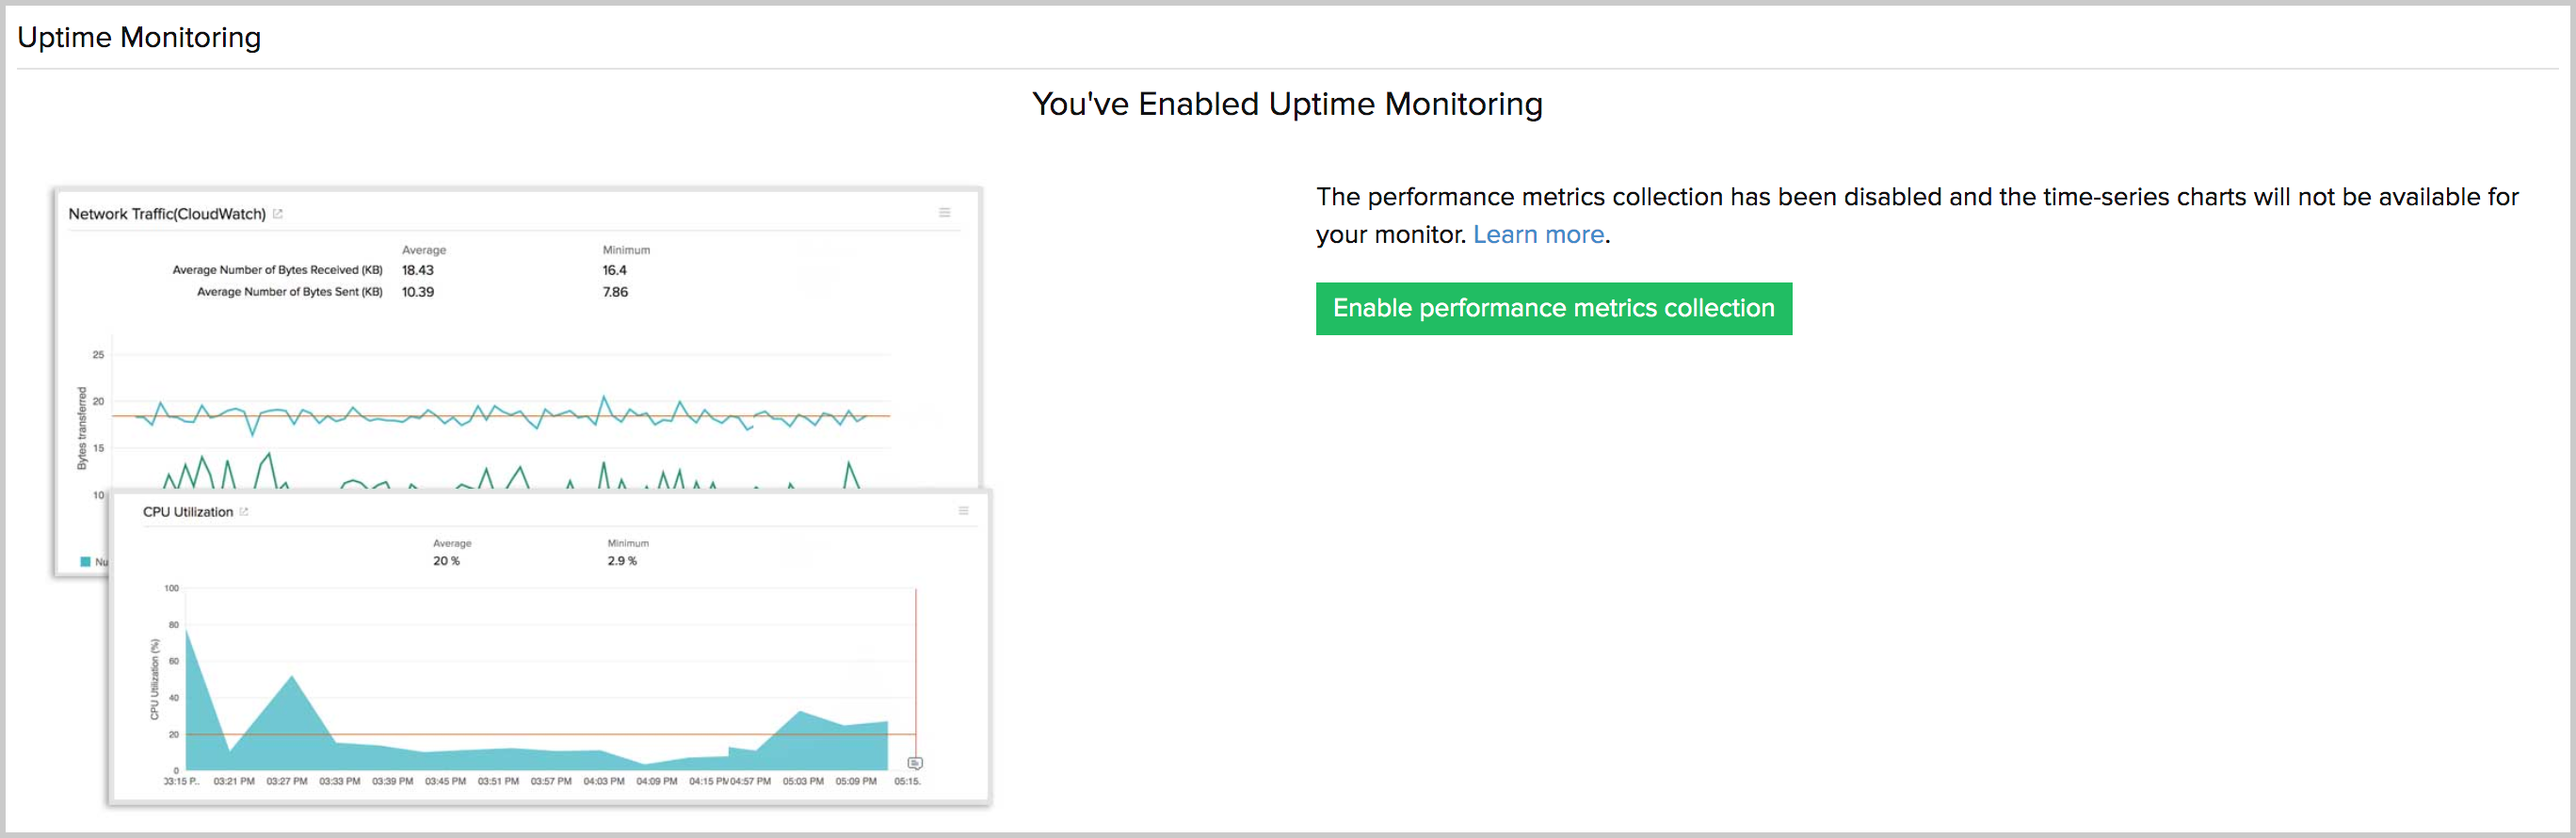 uptime monitoring enabled for AWS resources